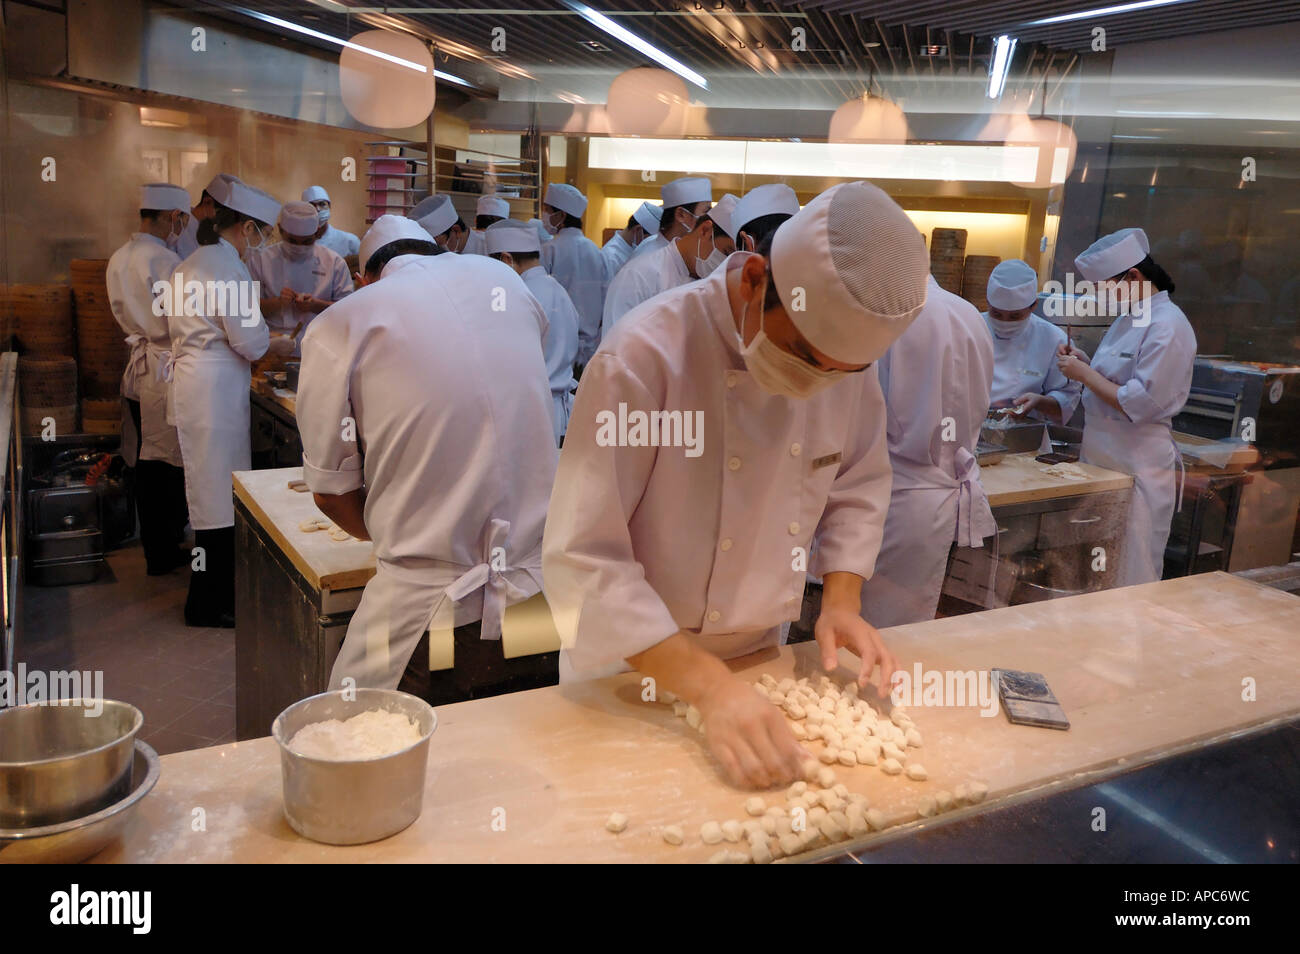 Busy Restaurant Kitchen A Glimpse Of A Busy Chinese Dumpling Restaurant Kitchen Shows